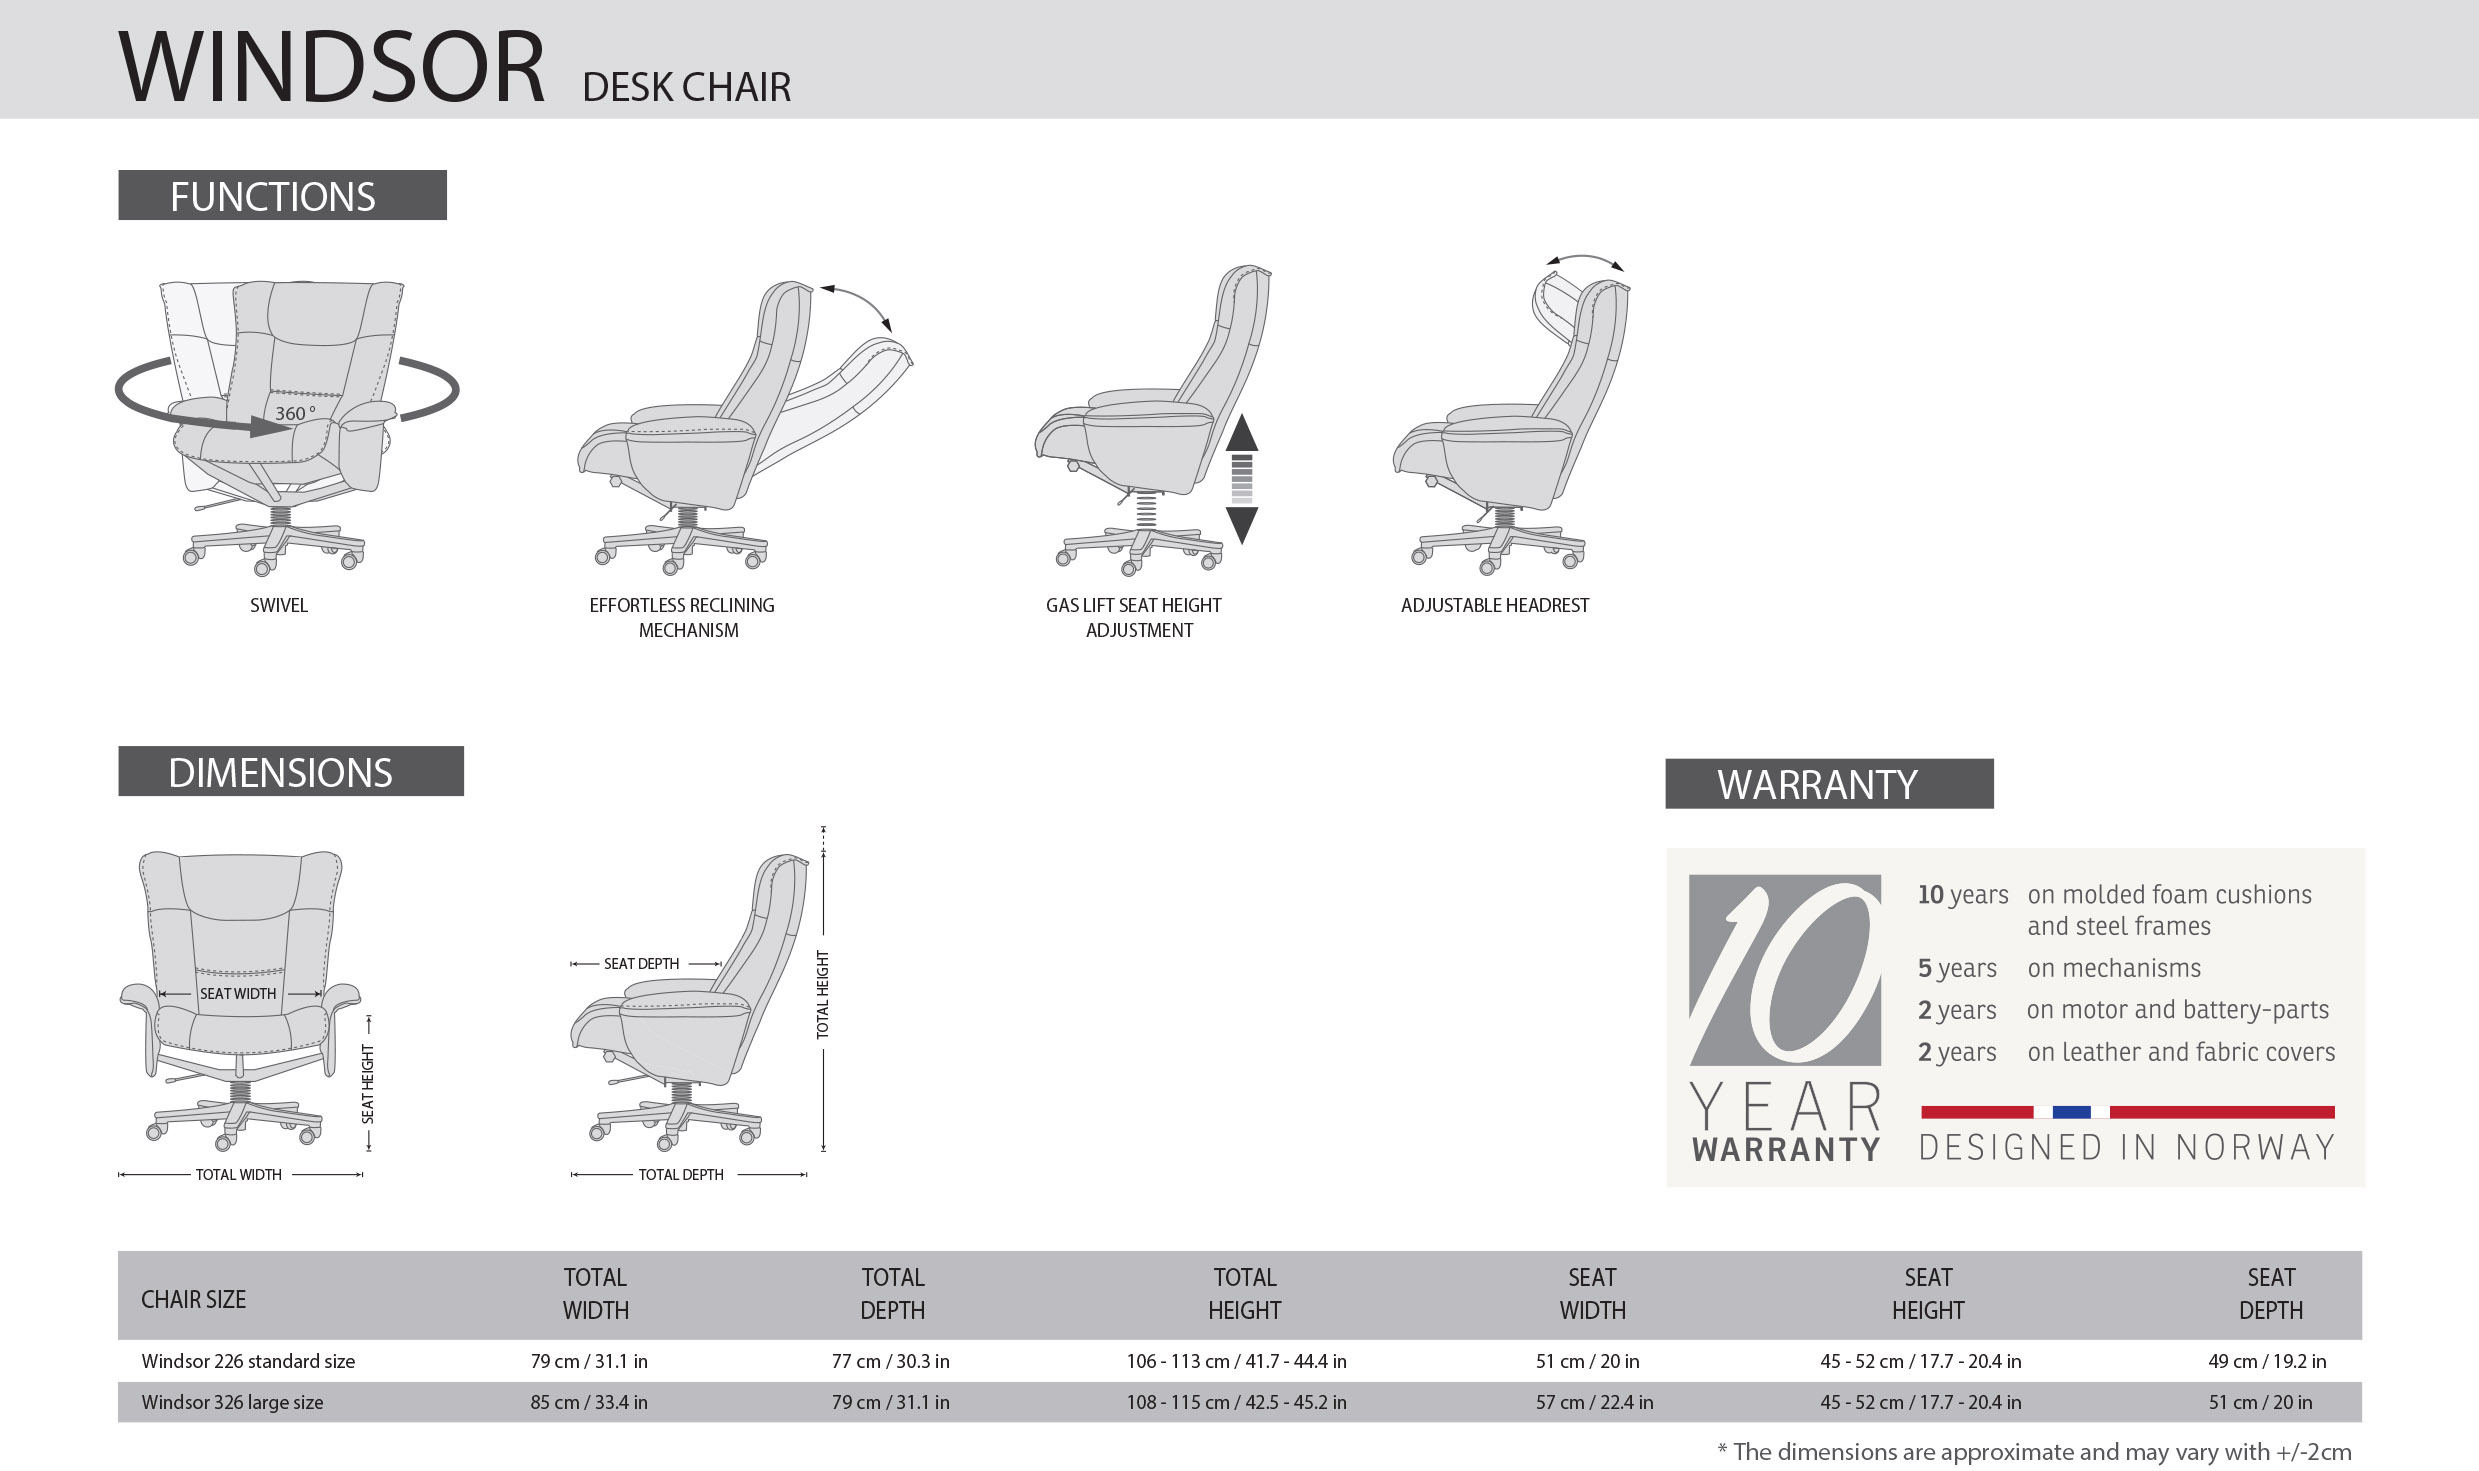 IMG Windsor Office Chair Dimensions